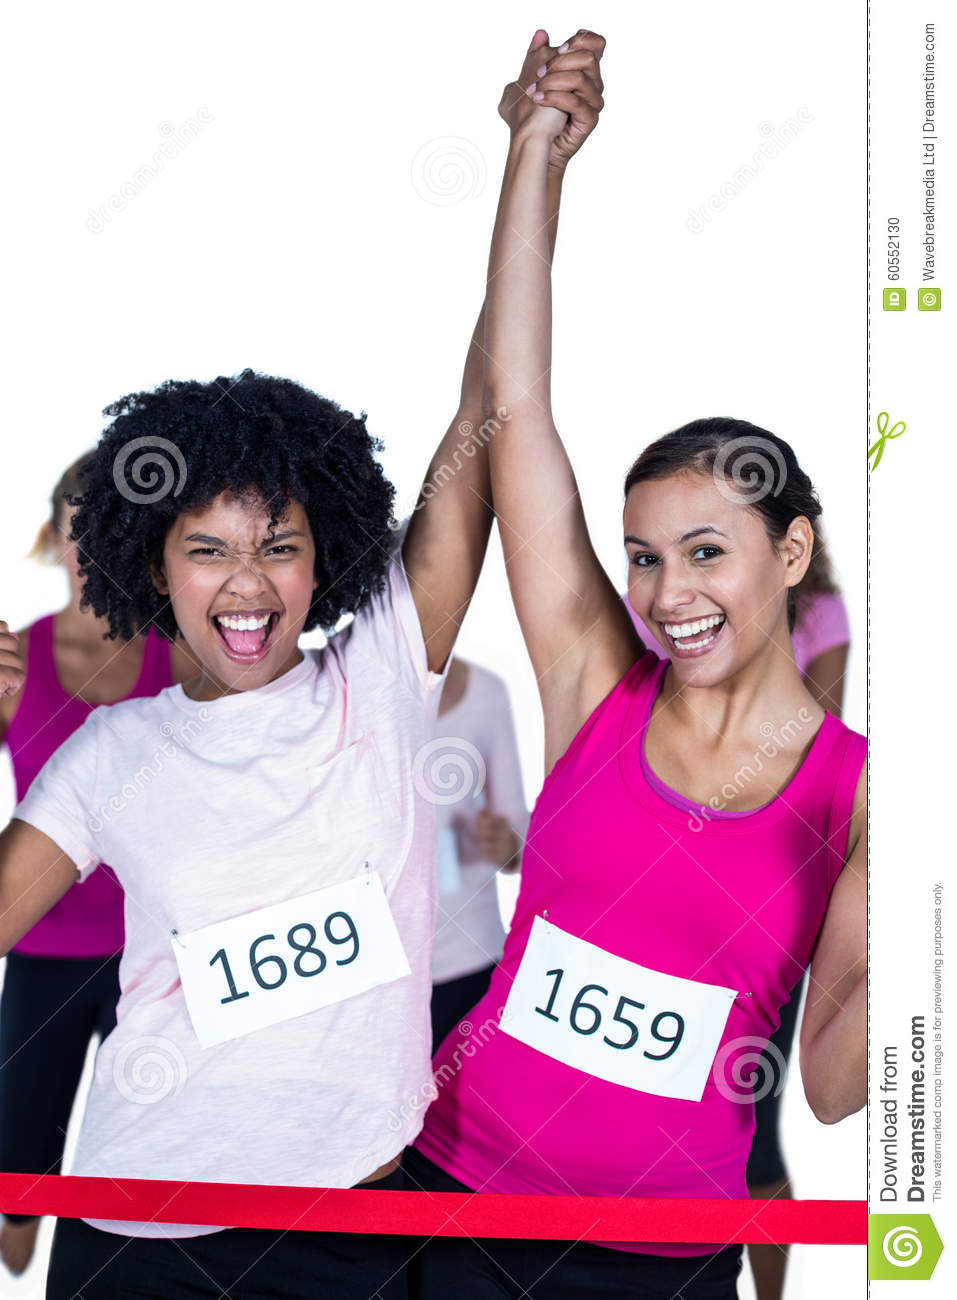 Portrait of cheerful winner athletes crossing finish line with arms raised